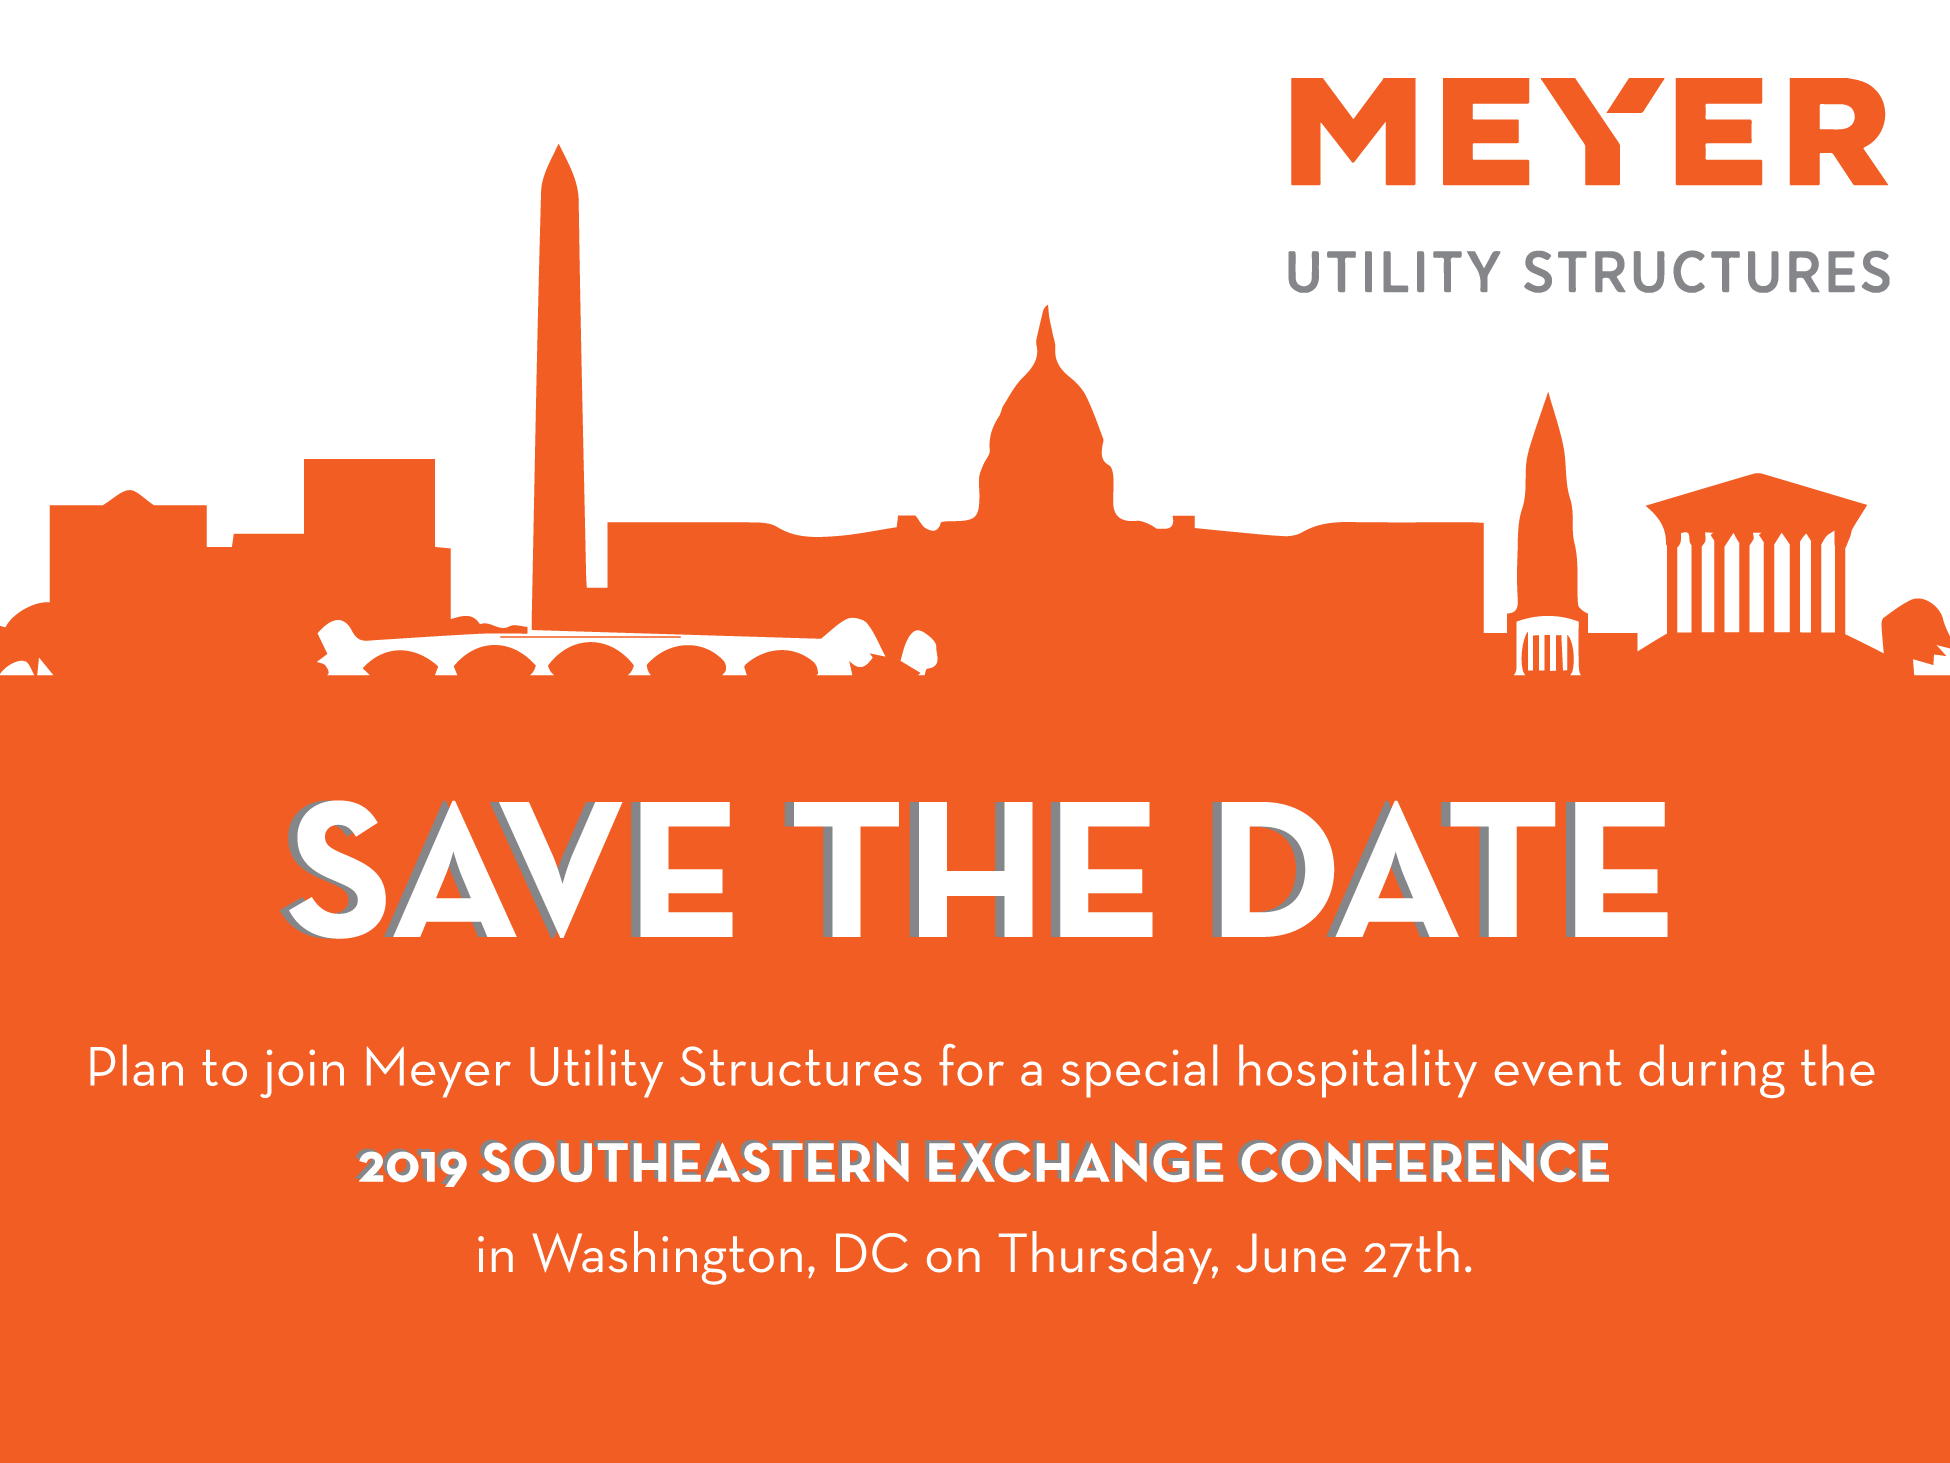 Save the Date_Meyer_SEE2019.png